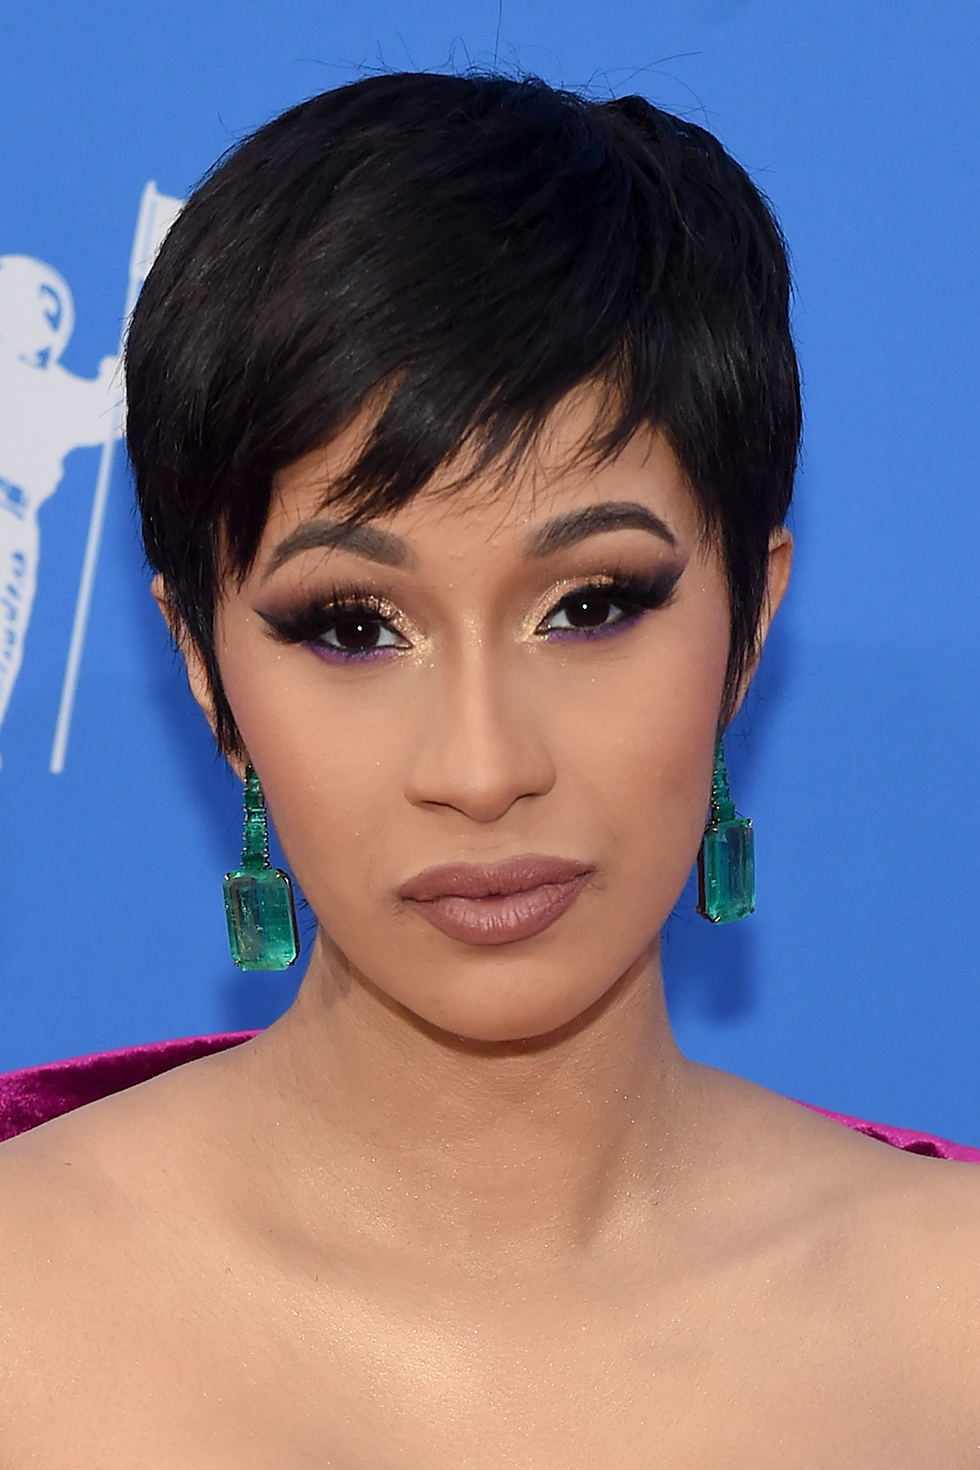 Cardi B. Long live the pixie cut Cardi B debuted at the 2018 MTV Video Music Awards. Celeb stylist Tokyo Styles is responsible for this wig, which paid homage to Halle Berry's famous '90s 'do in the best way.